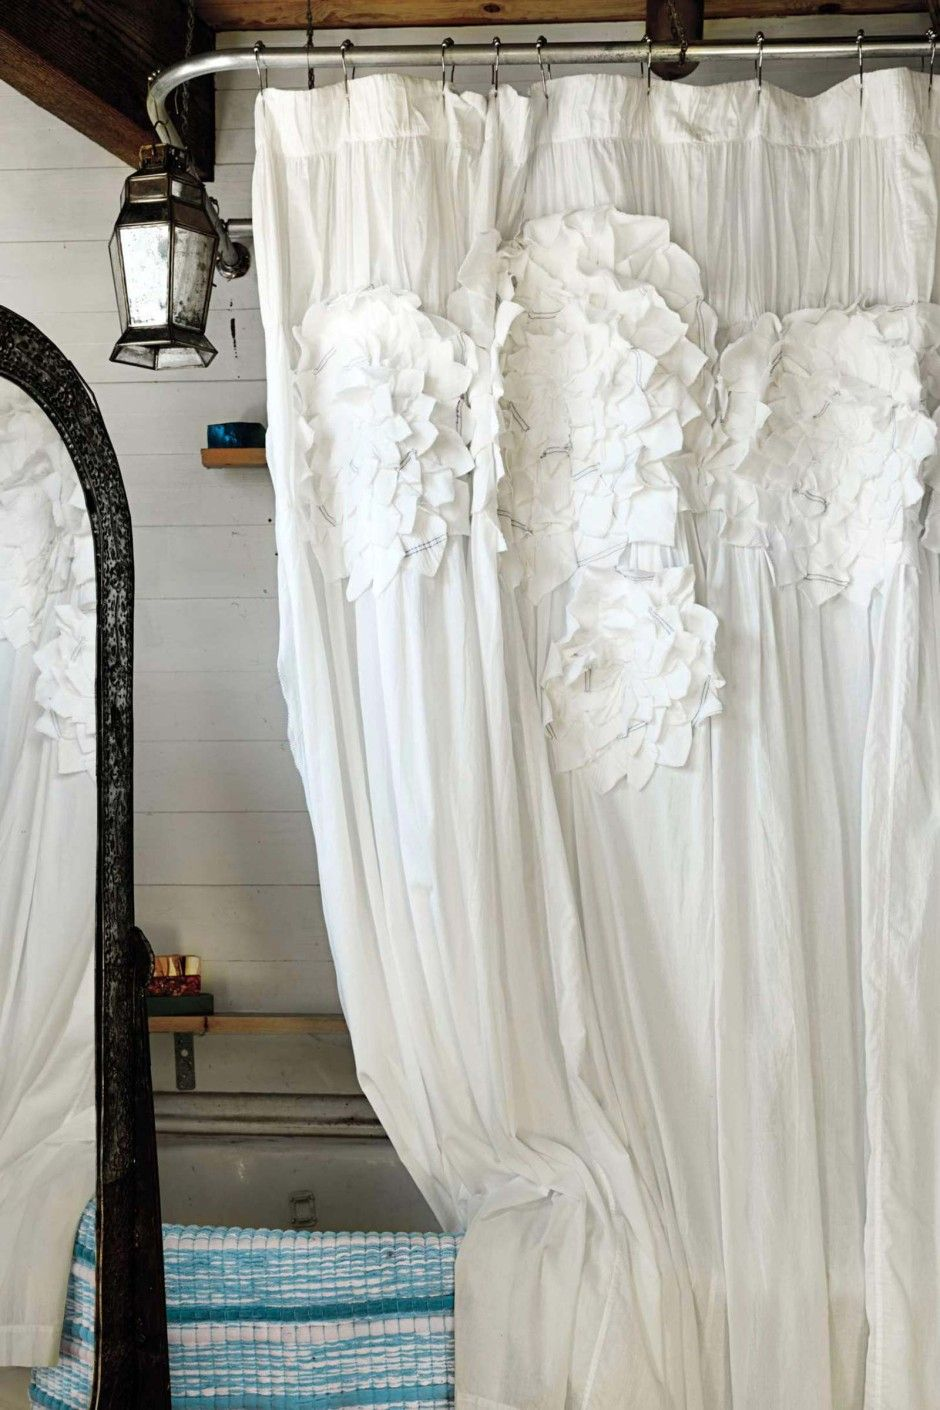 11 Incredible Secrets Of How To Craft White Ruffle Shower Curtain